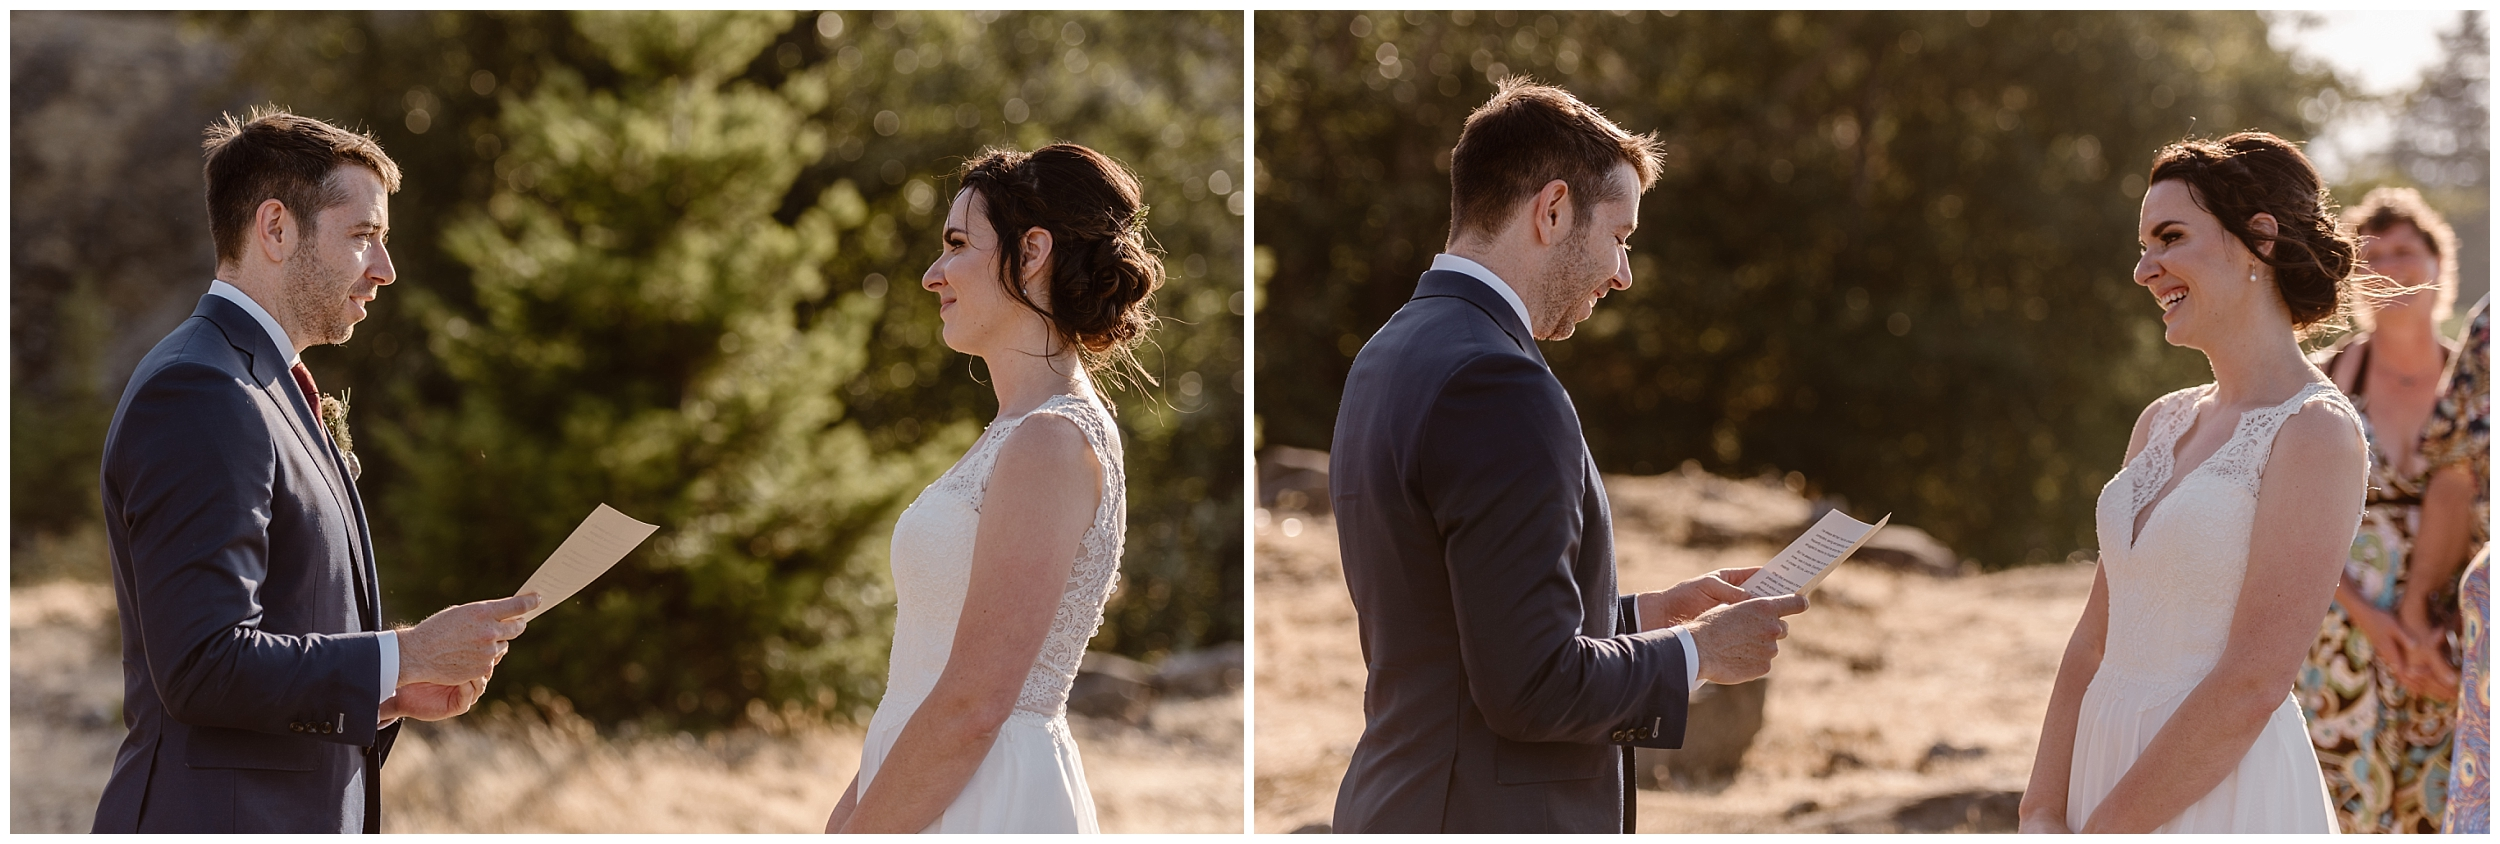 These side-by-side elopement pictures show David, the groom, reading his personal vows to his bride, Lauryn , during their Oregon elopement ceremony at the Columbia River Gorge.